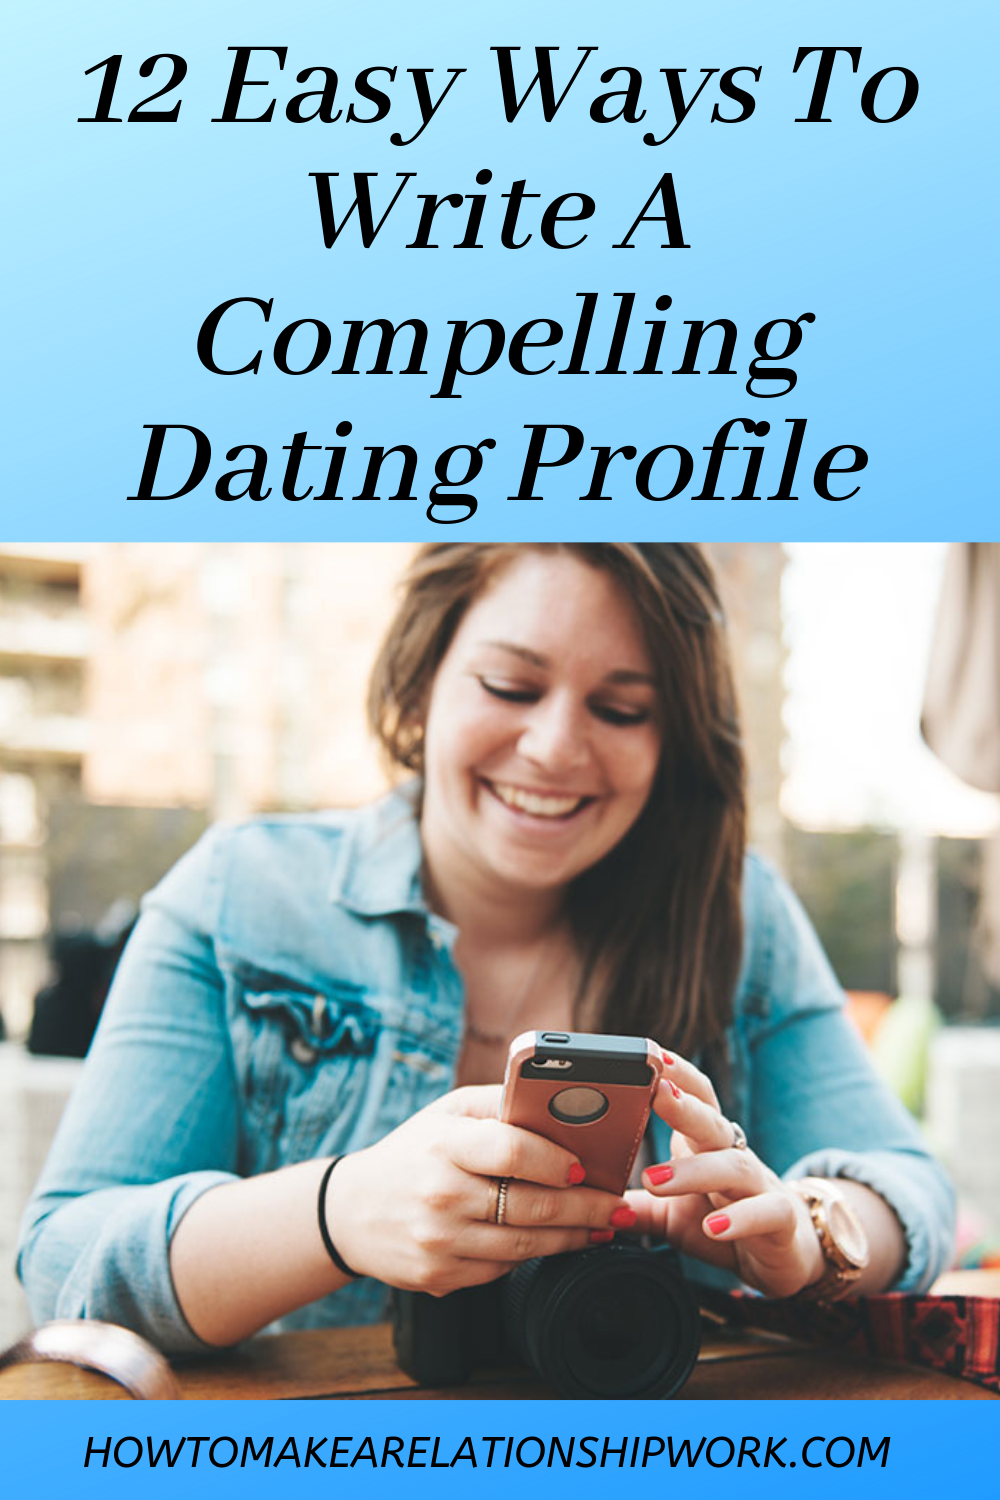 Perfect About Me Section Dating